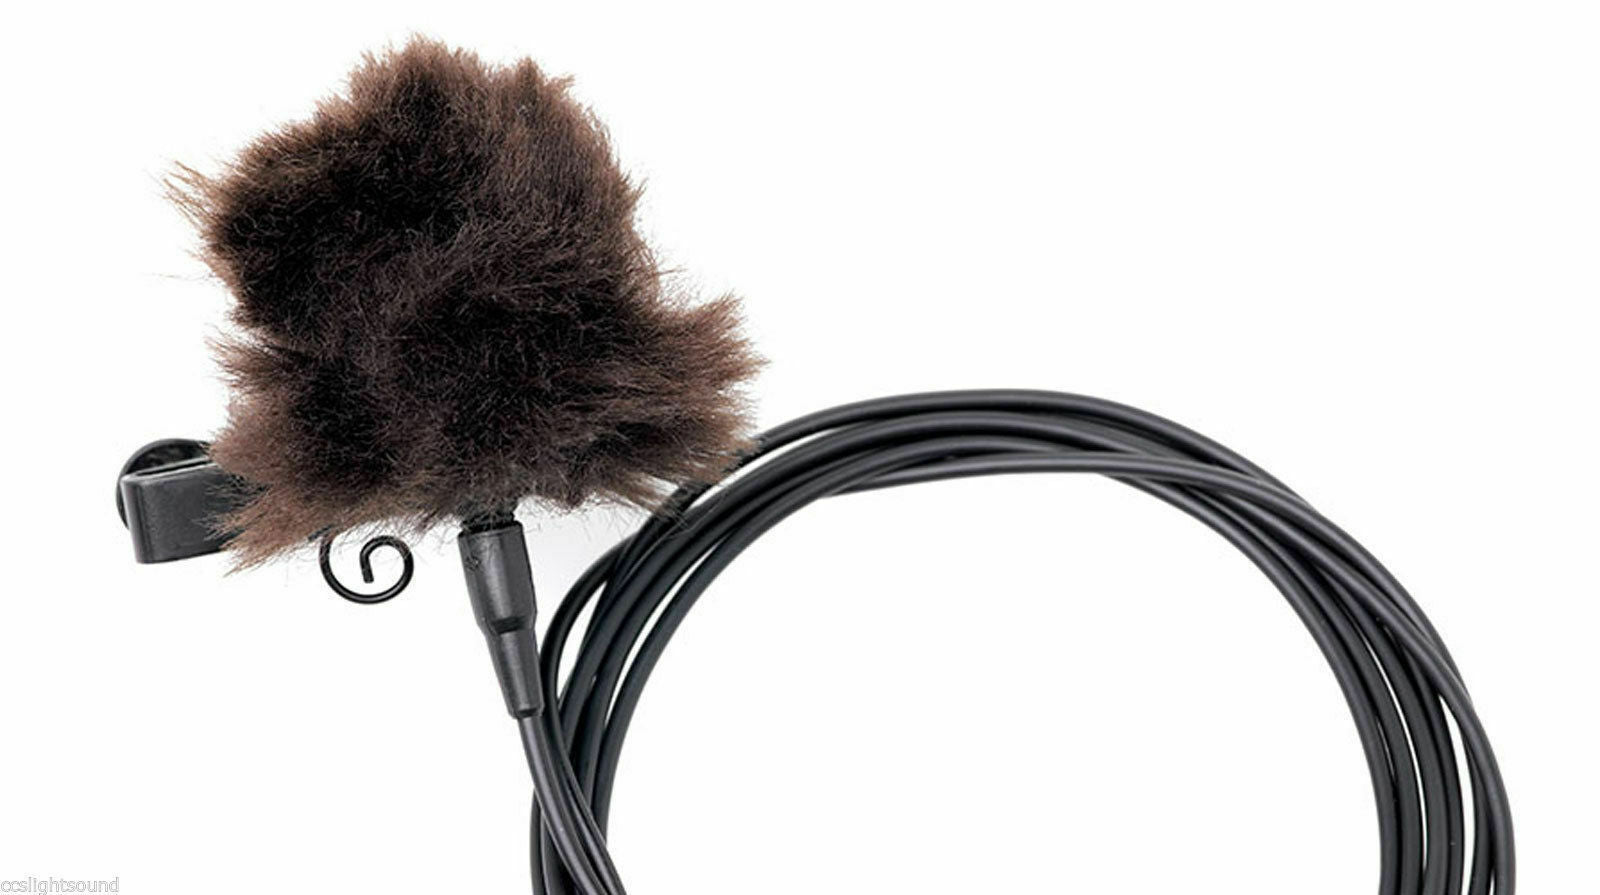 RODE SMARTLAV+ BROADCASTGRADE LAVALIER MIC FOR SMART PHONES AND 3 x MINIFURLAV